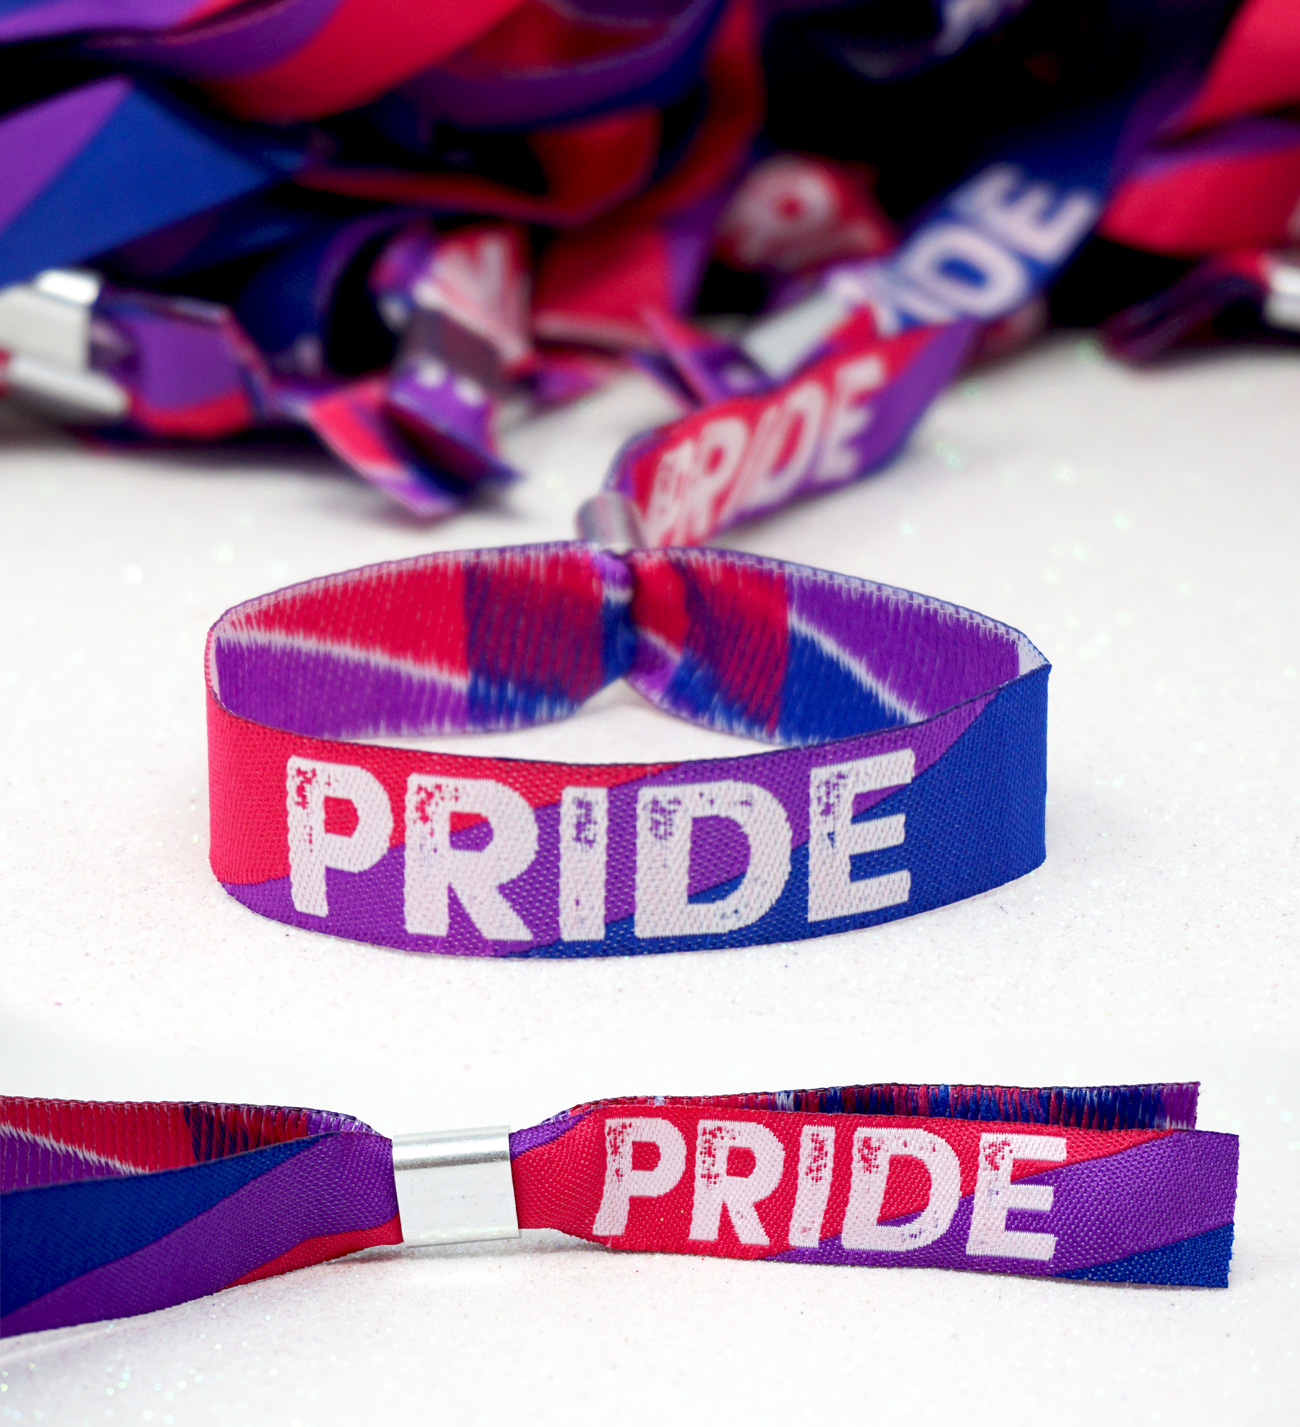 bisexual pride parades wristbands